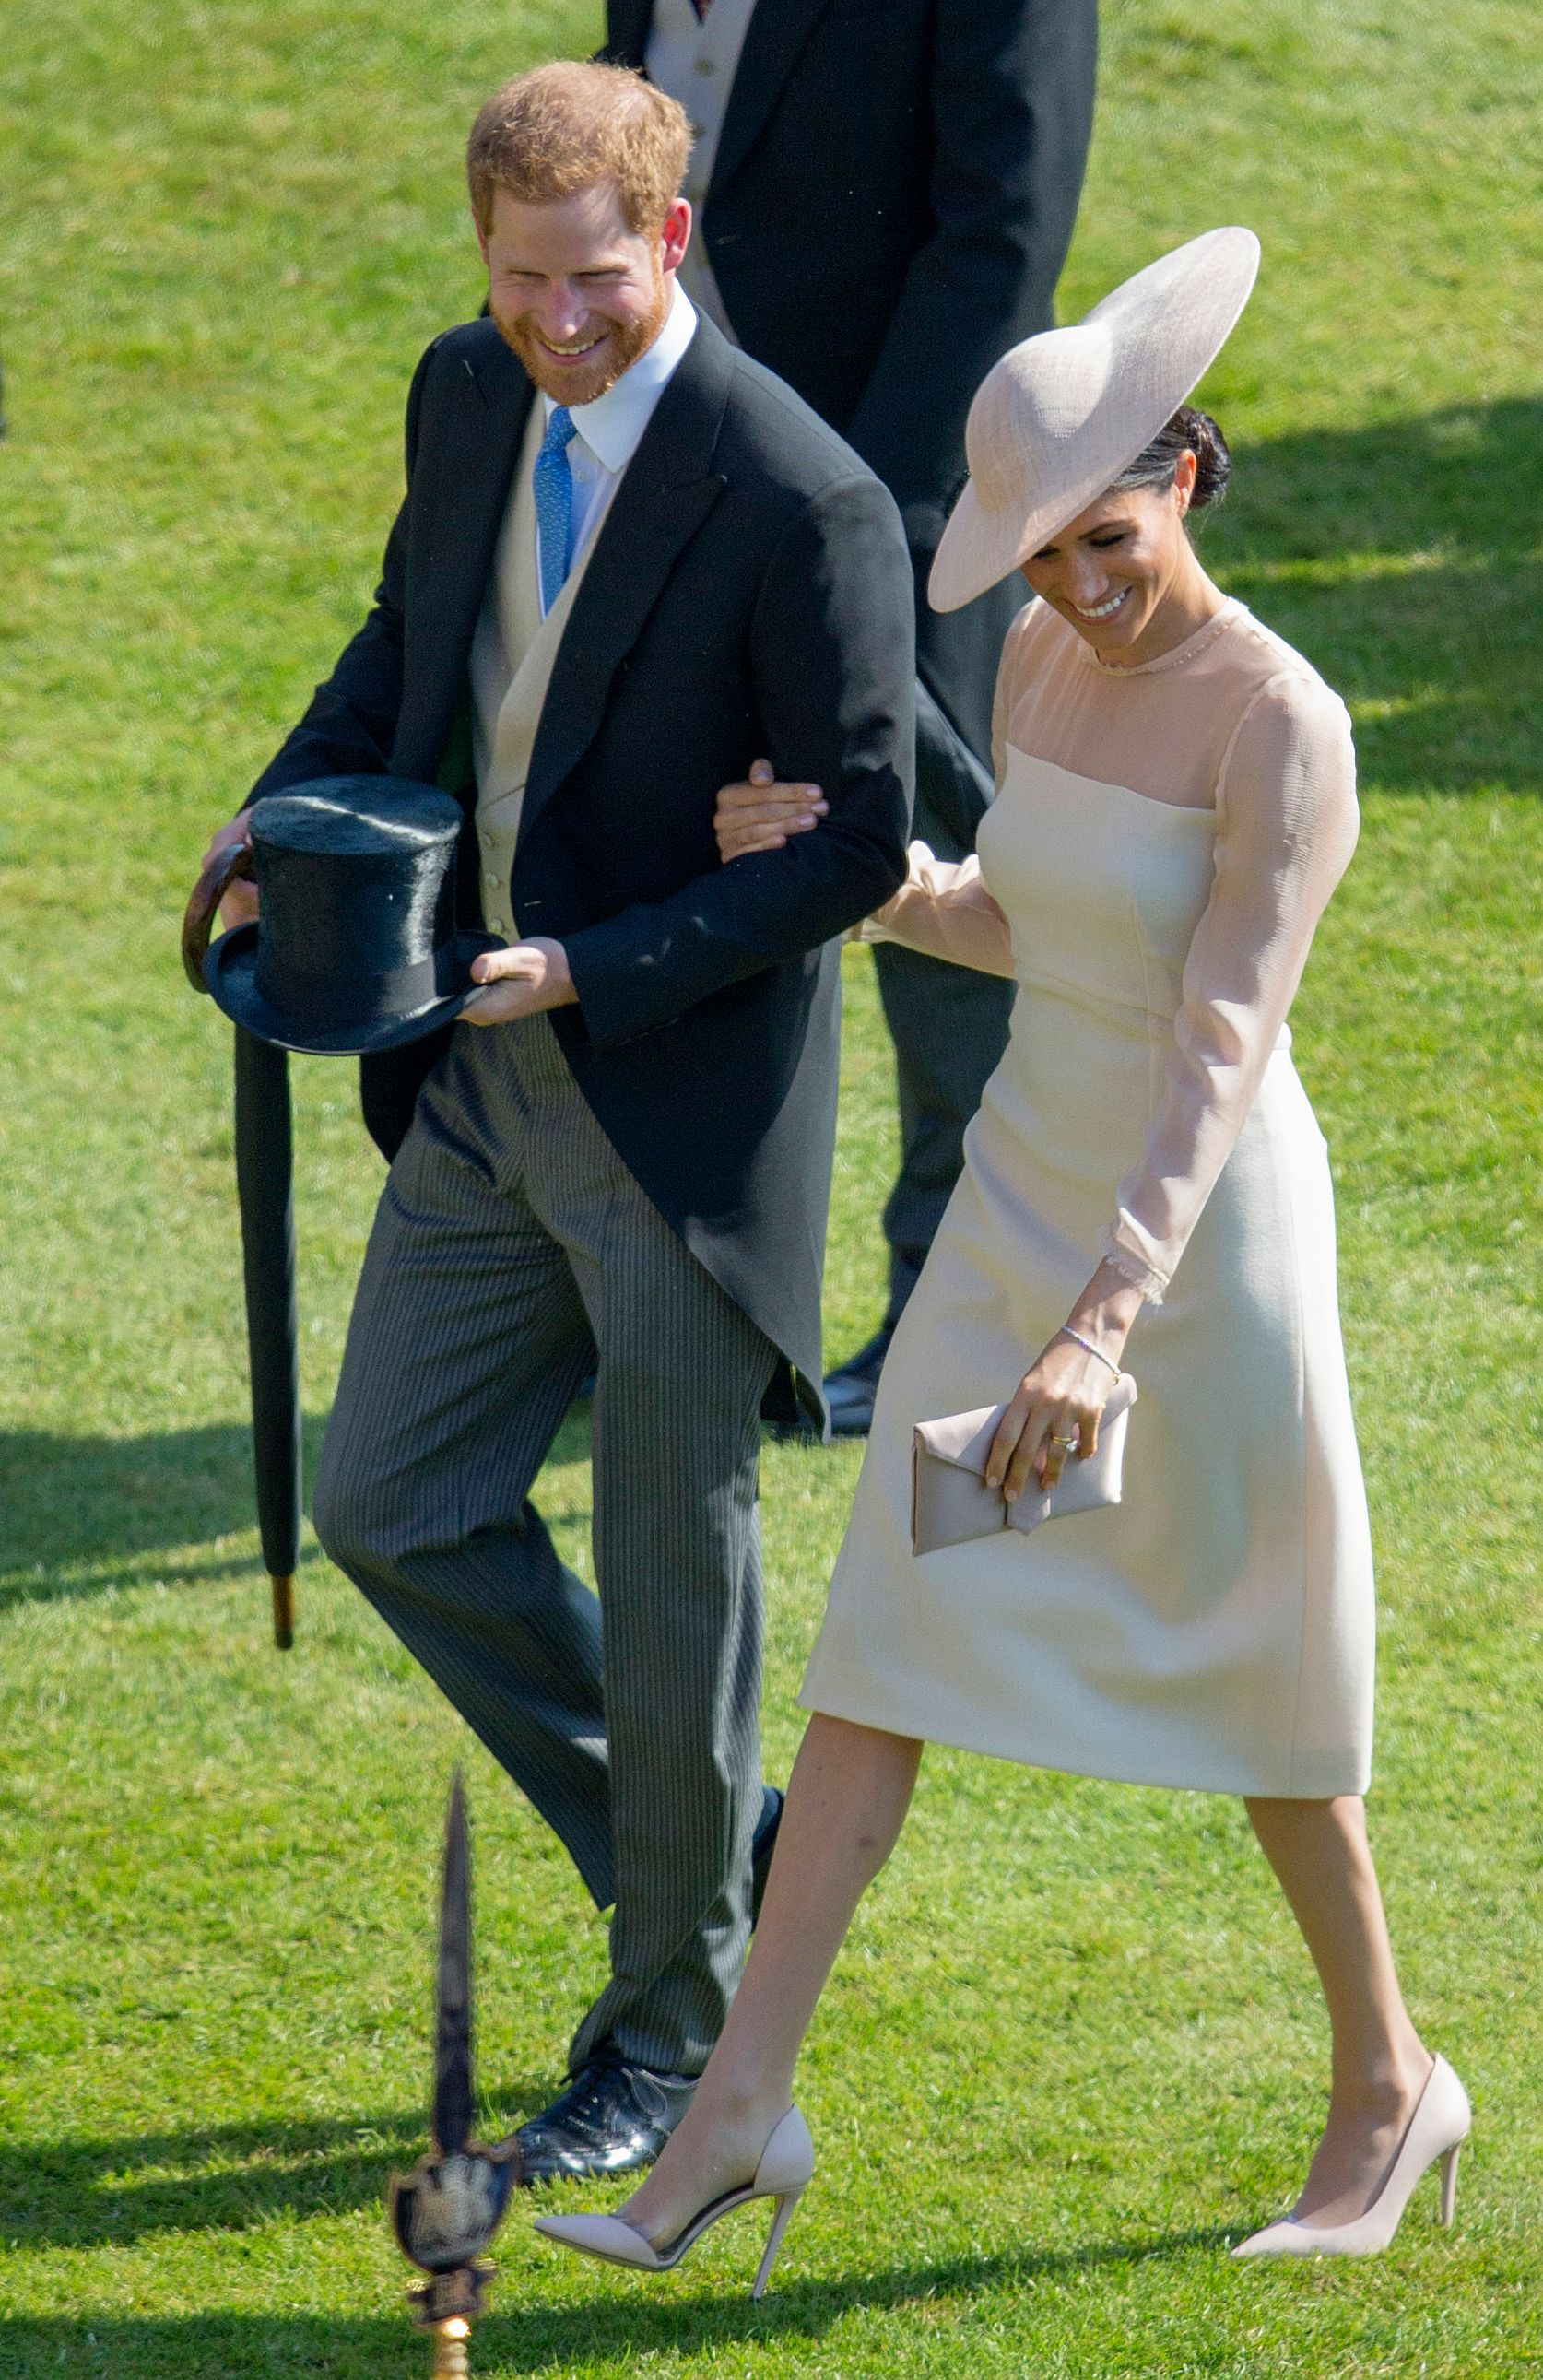 "<div class=""meta image-caption""><div class=""origin-logo origin-image none""><span>none</span></div><span class=""caption-text"">Prince Harry, Duke of Sussex and his new wife Britain's Meghan, Duchess of Sussex, attend the Prince of Wales's 70th Birthday Garden Party at Buckingham Palace in London on May 22. (IAN VOGLER/AFP/Getty Images)</span></div>"